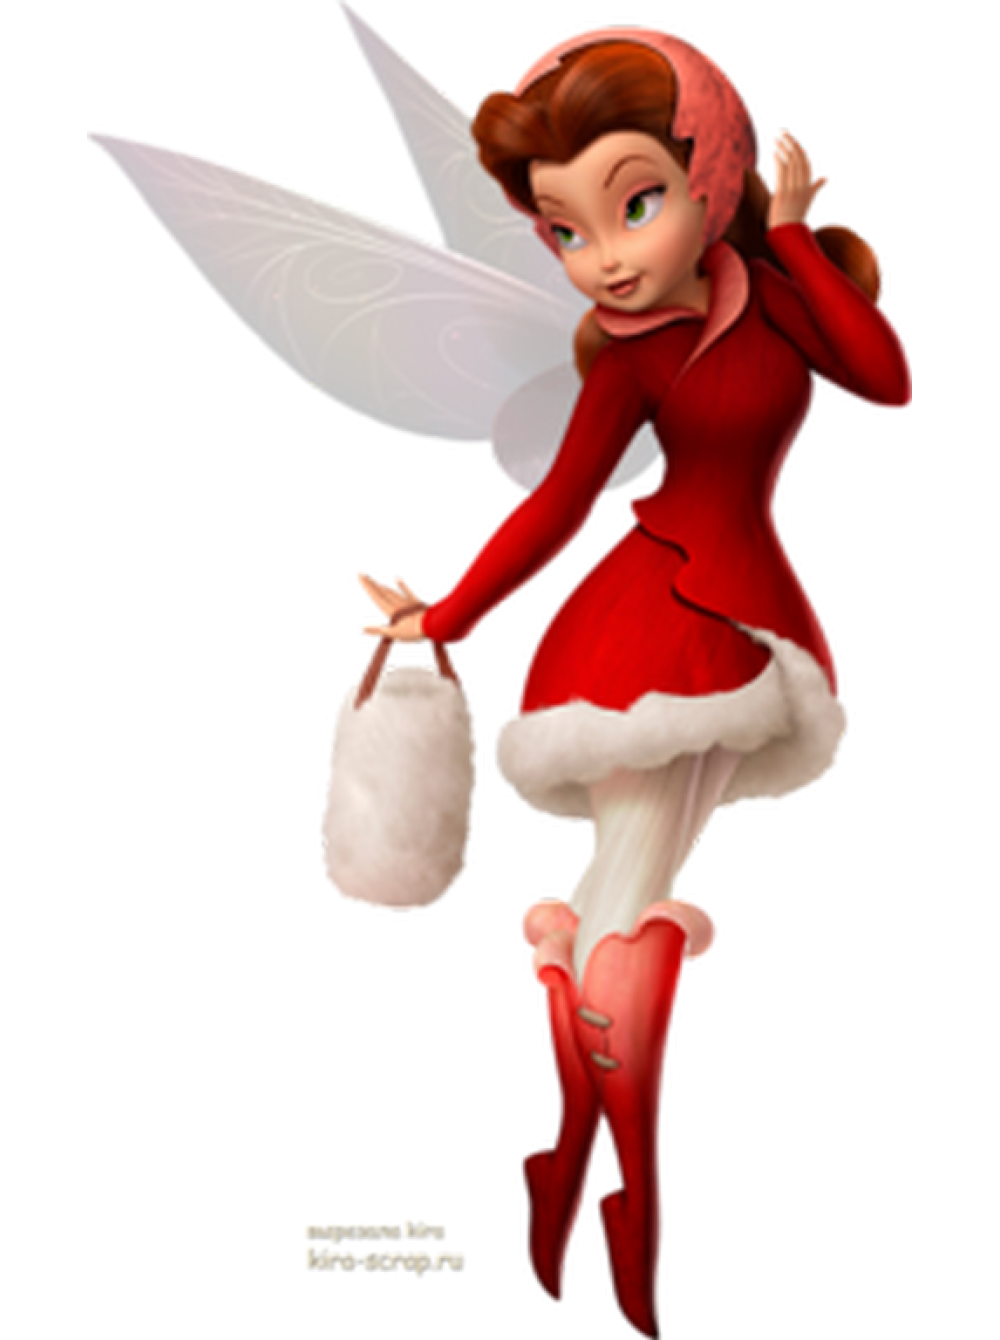 Rosetta tinkerbell clipart images gallery for free download.